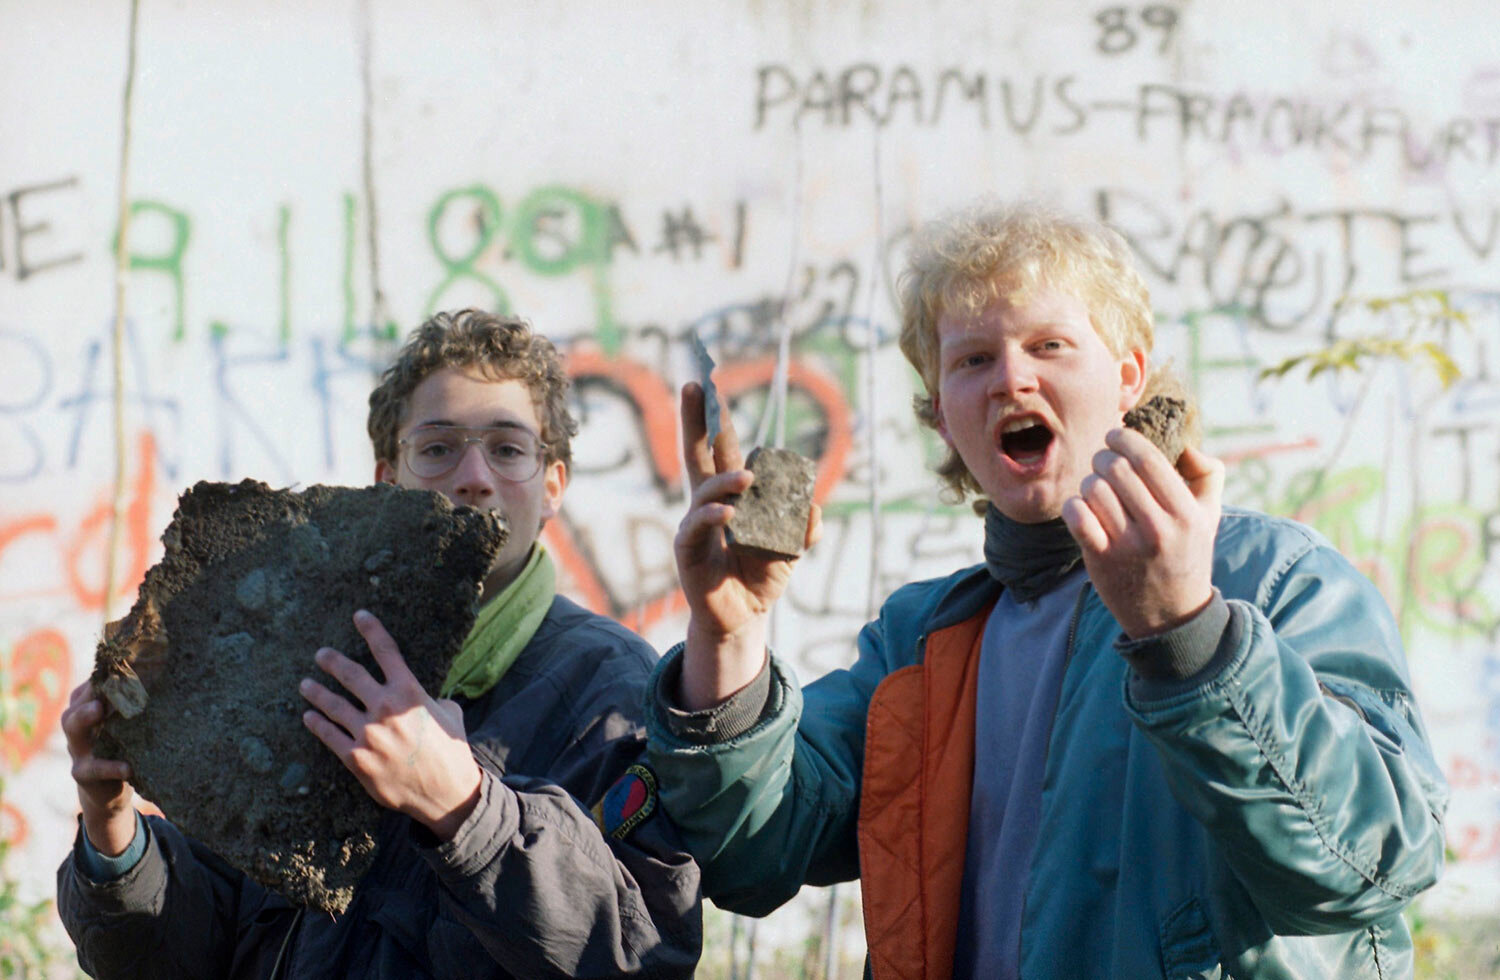 Berlin schoolboys proudly show off bricks of the Berlin Wall they found near Brandenburg Gate in Berlin from last night's celebrations at the opening of the East German border to the West, Nov. 10, 1989. (AP Photo/Udo Weitz)